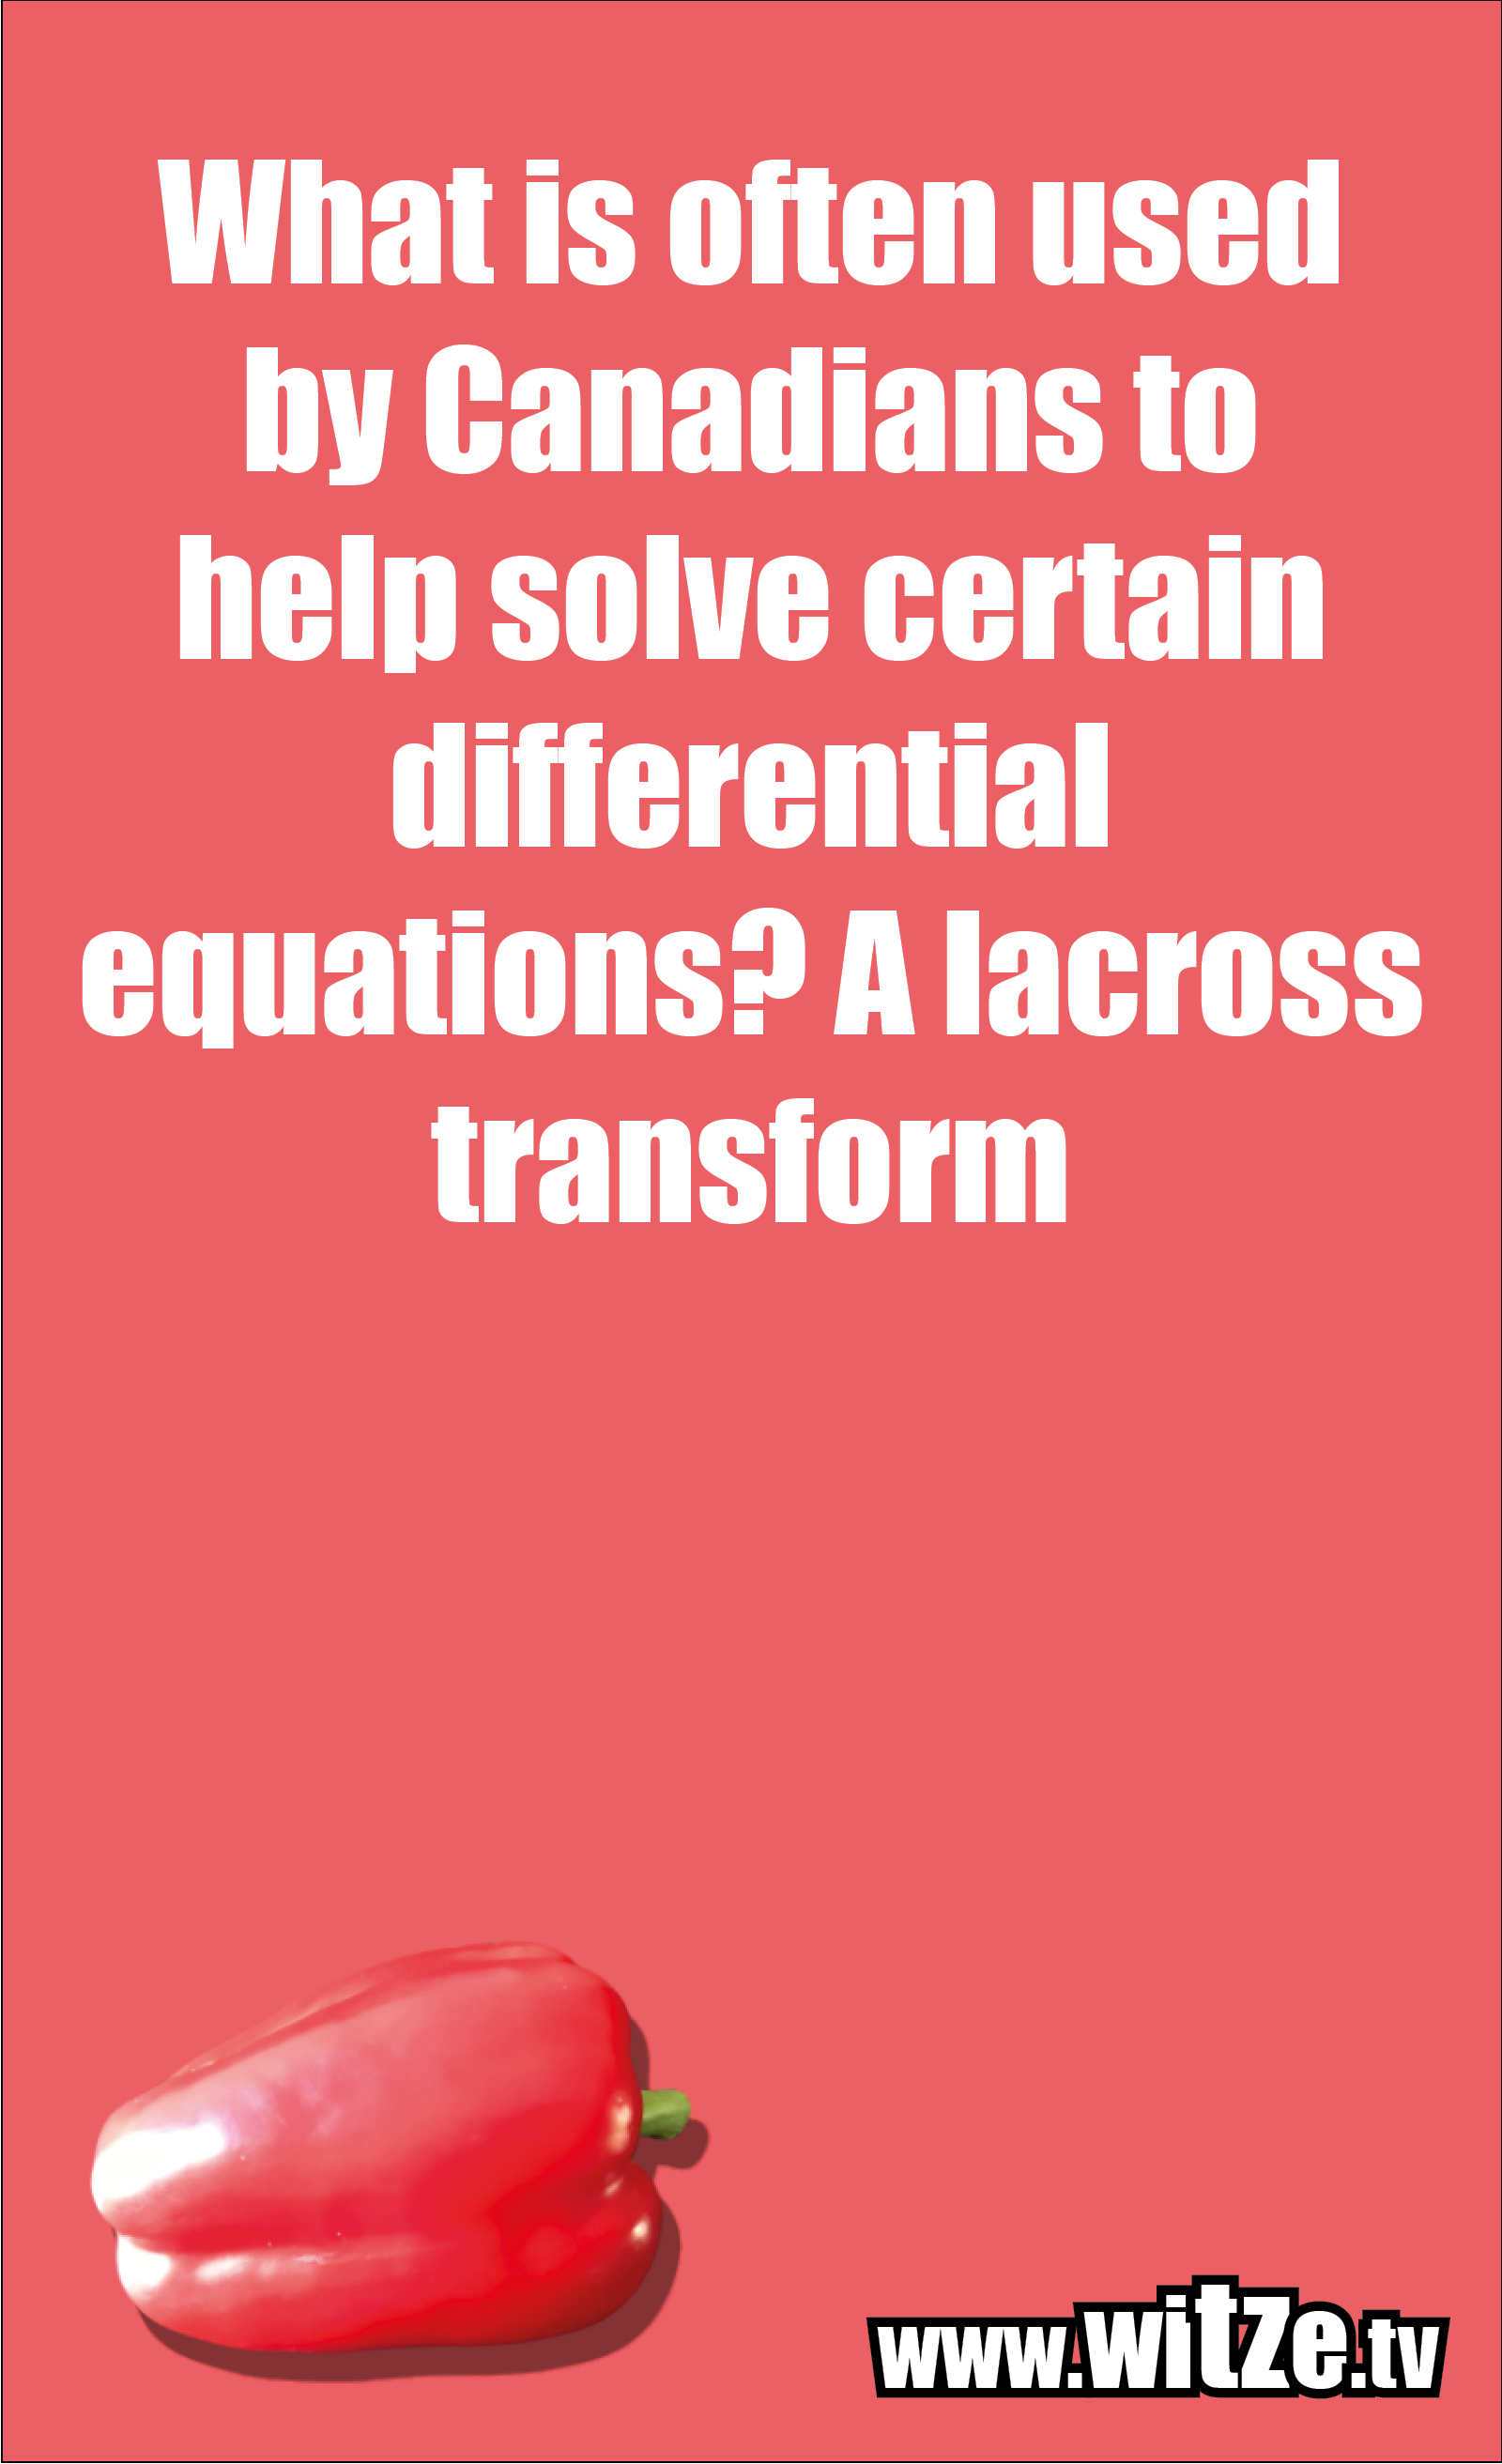 Math joke… What is often used by Canadians to help solve certain differential equations? A lacross transform